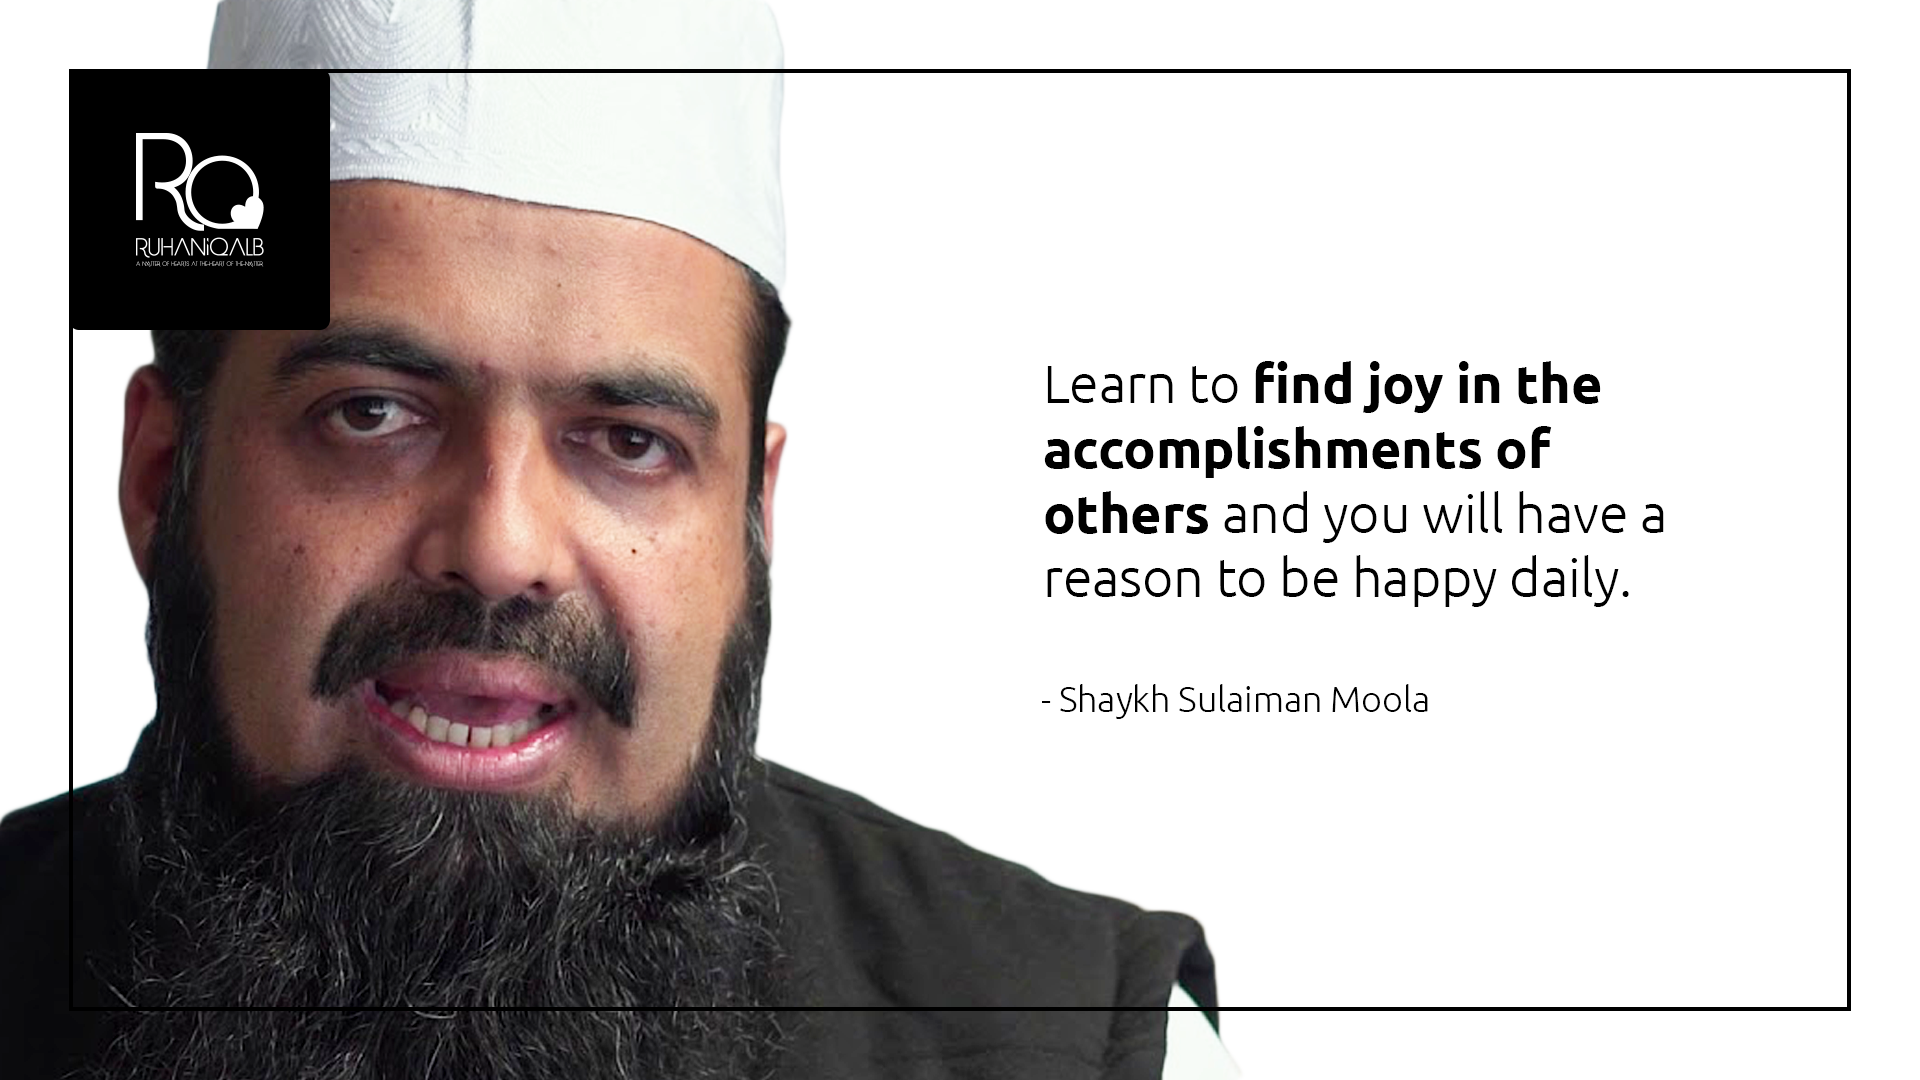 Learn-to-find-joy-in-the-accomplishments-of-others